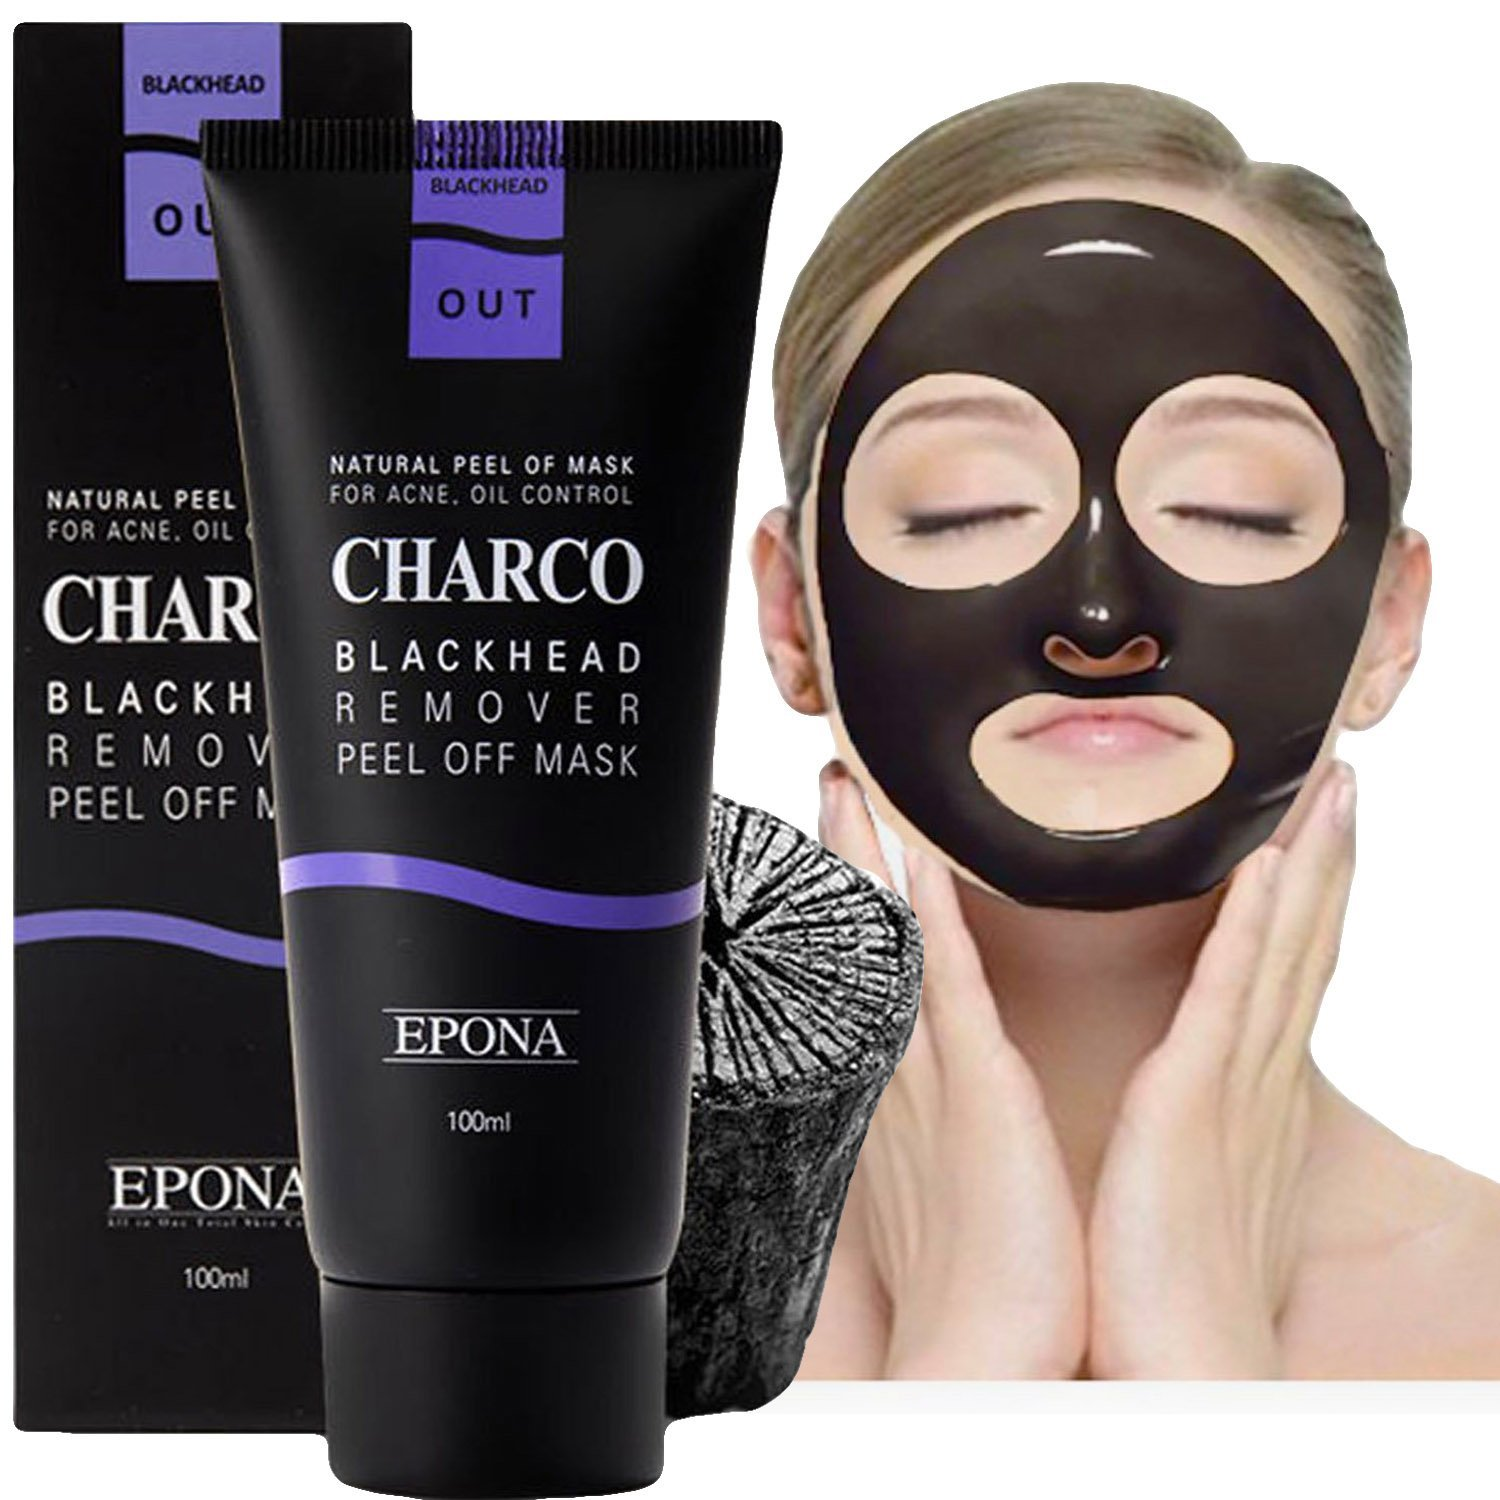 [EPONA] Korean Cosmetics Blackhead Remover Peel Off Natural Charcoal Deep Pore Mask for Acne(100g / 3.53oz)| Oil Control